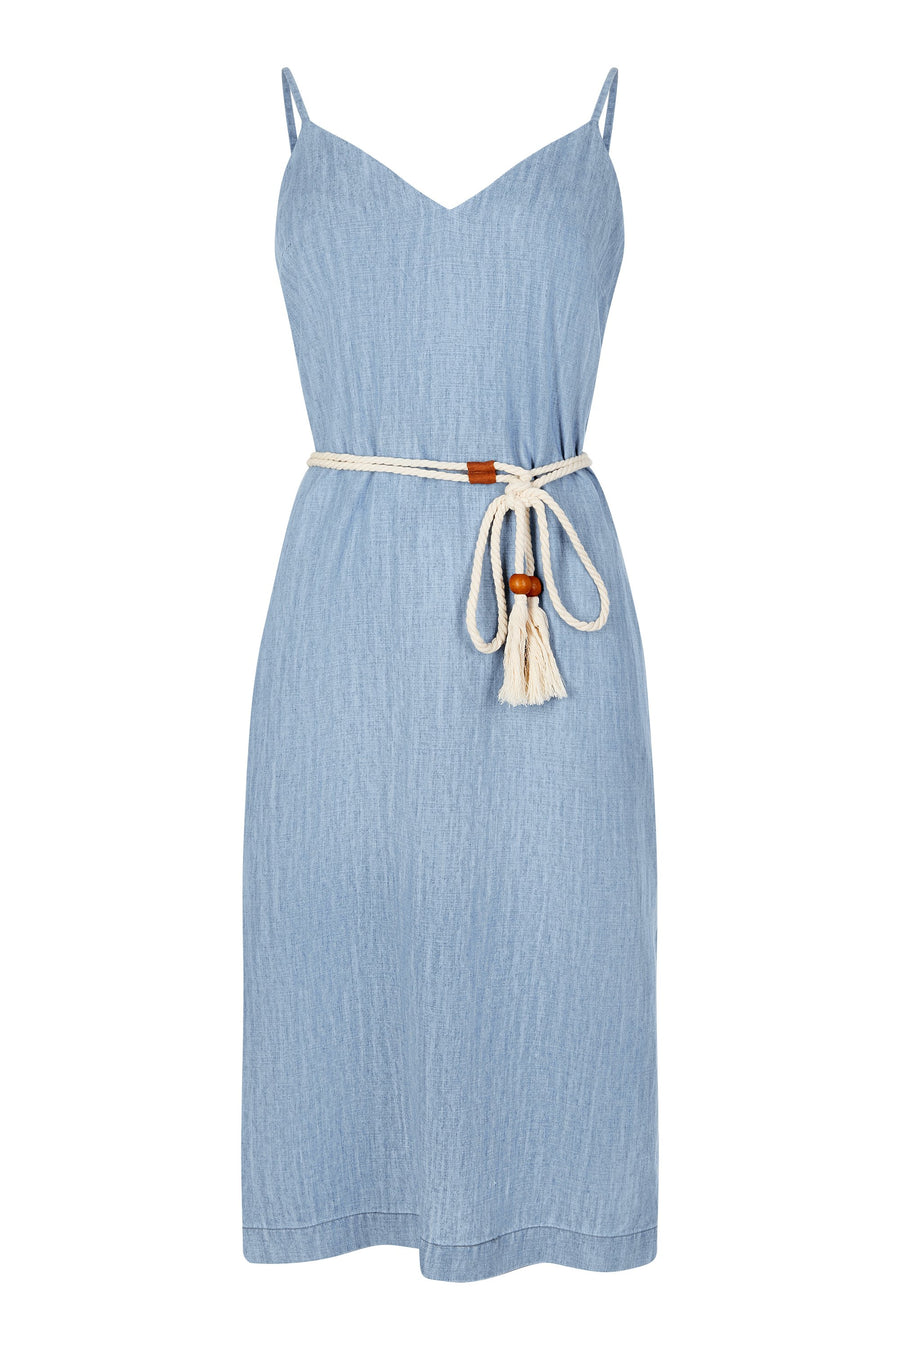 Sara Midi Denim Dress Tencel & Linen - Issara Fairtrade